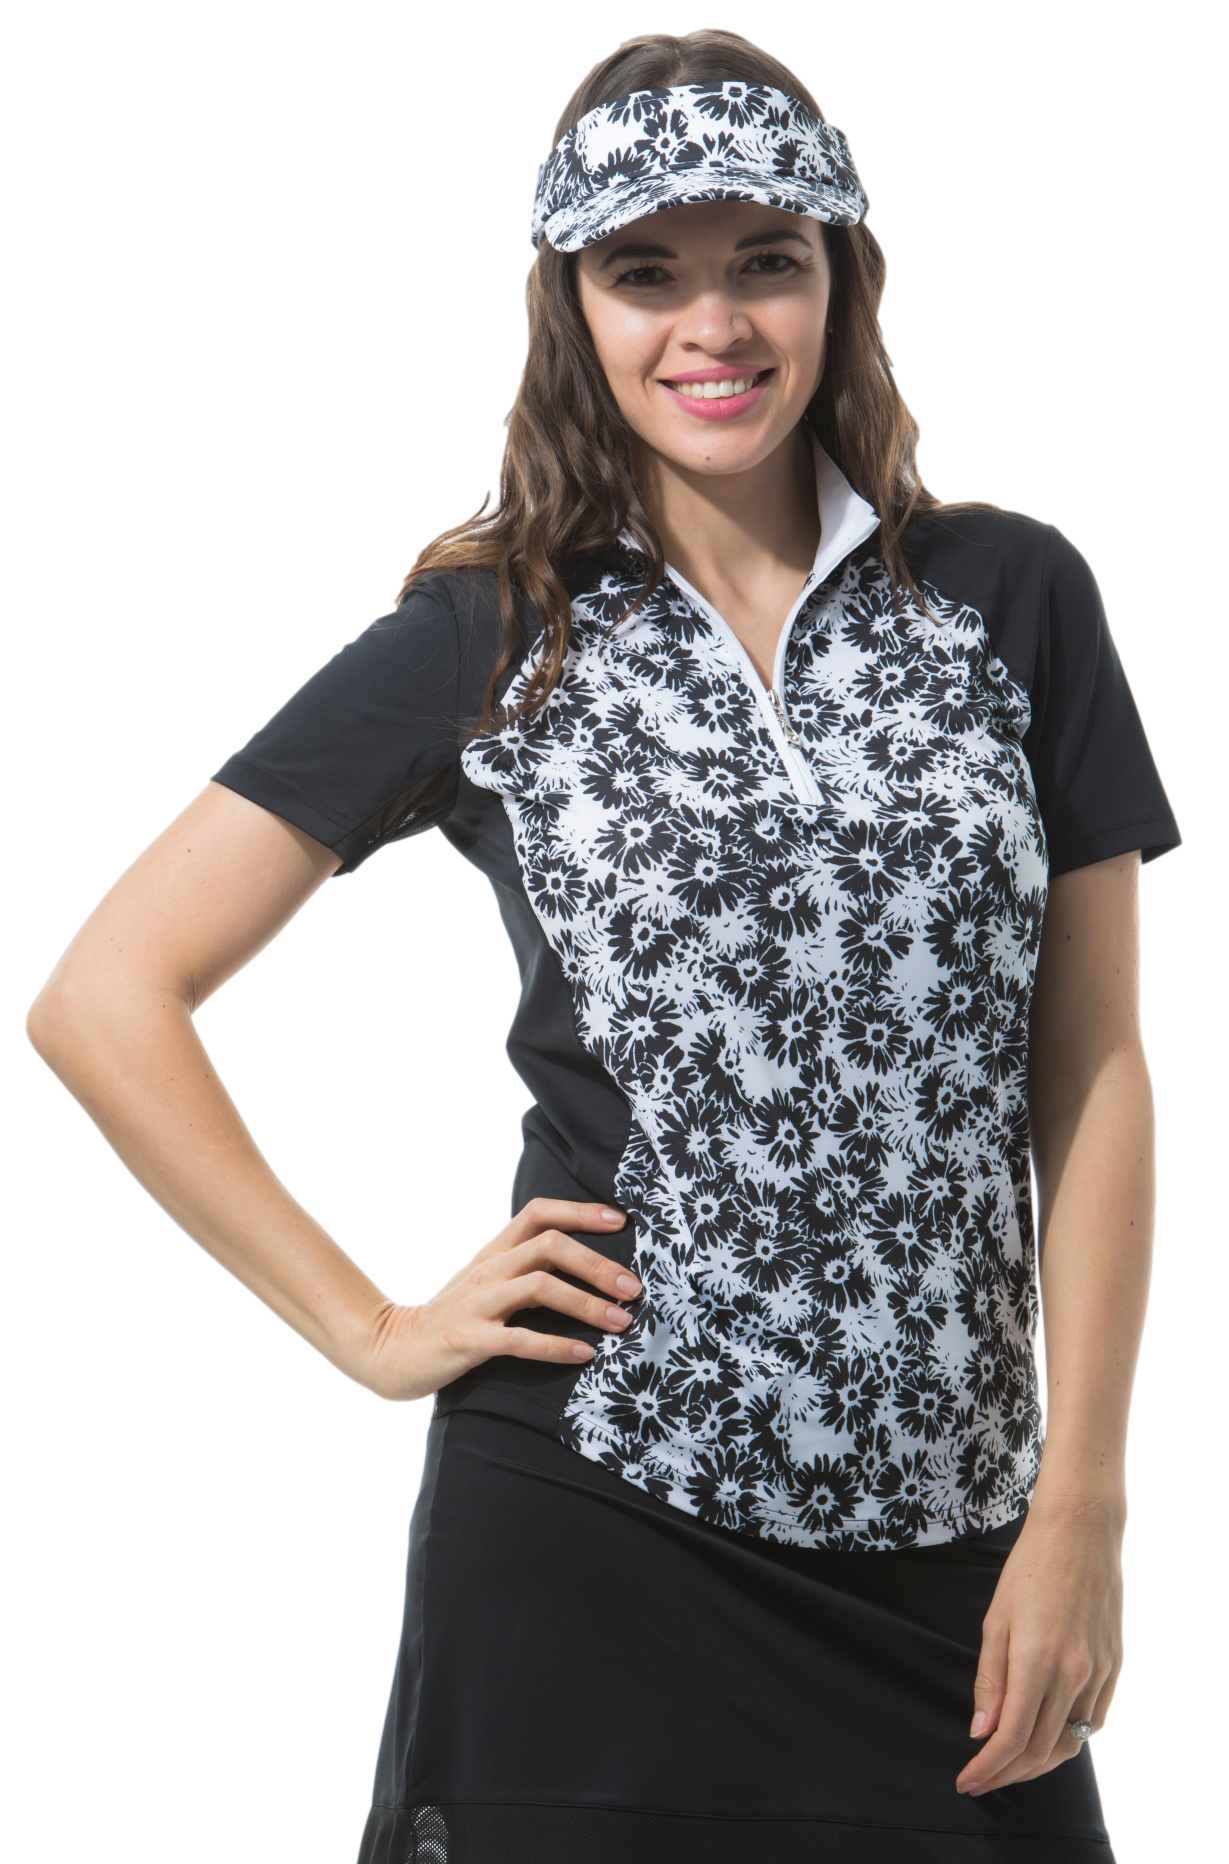 SANSOLEIL SOLCOOL SHORT SLEEVE MOCK - LAZY DAISY. BLACK. 900477